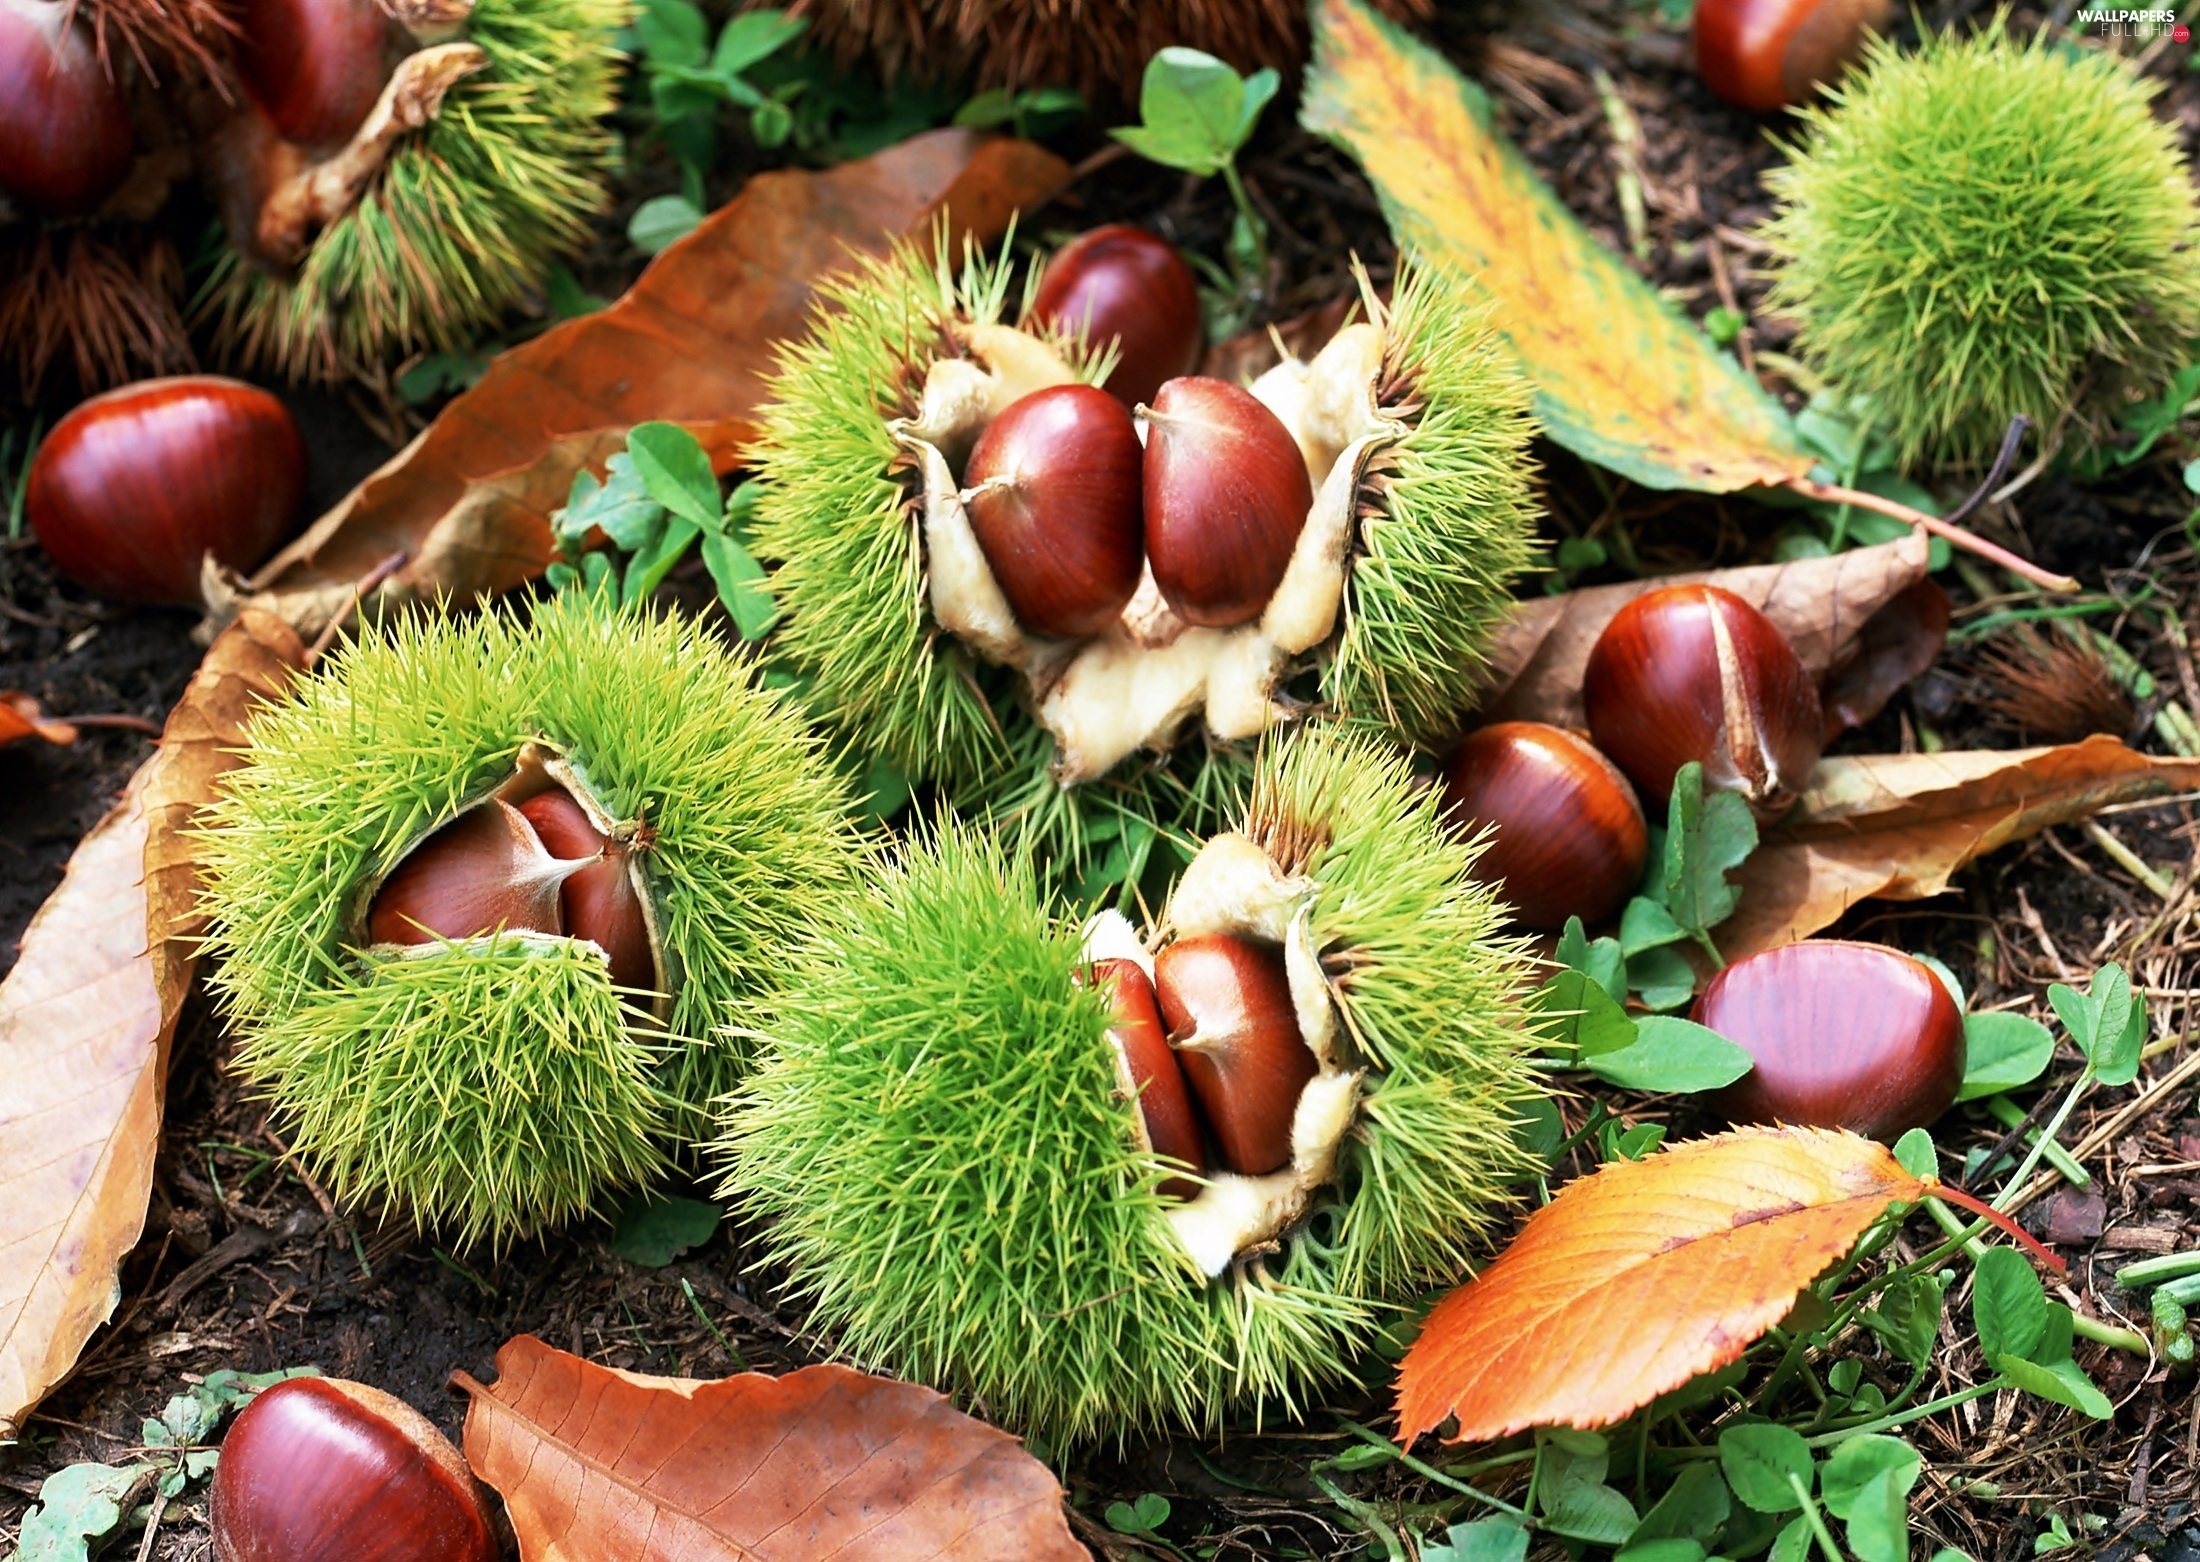 blur, Leaf, chestnuts, husks